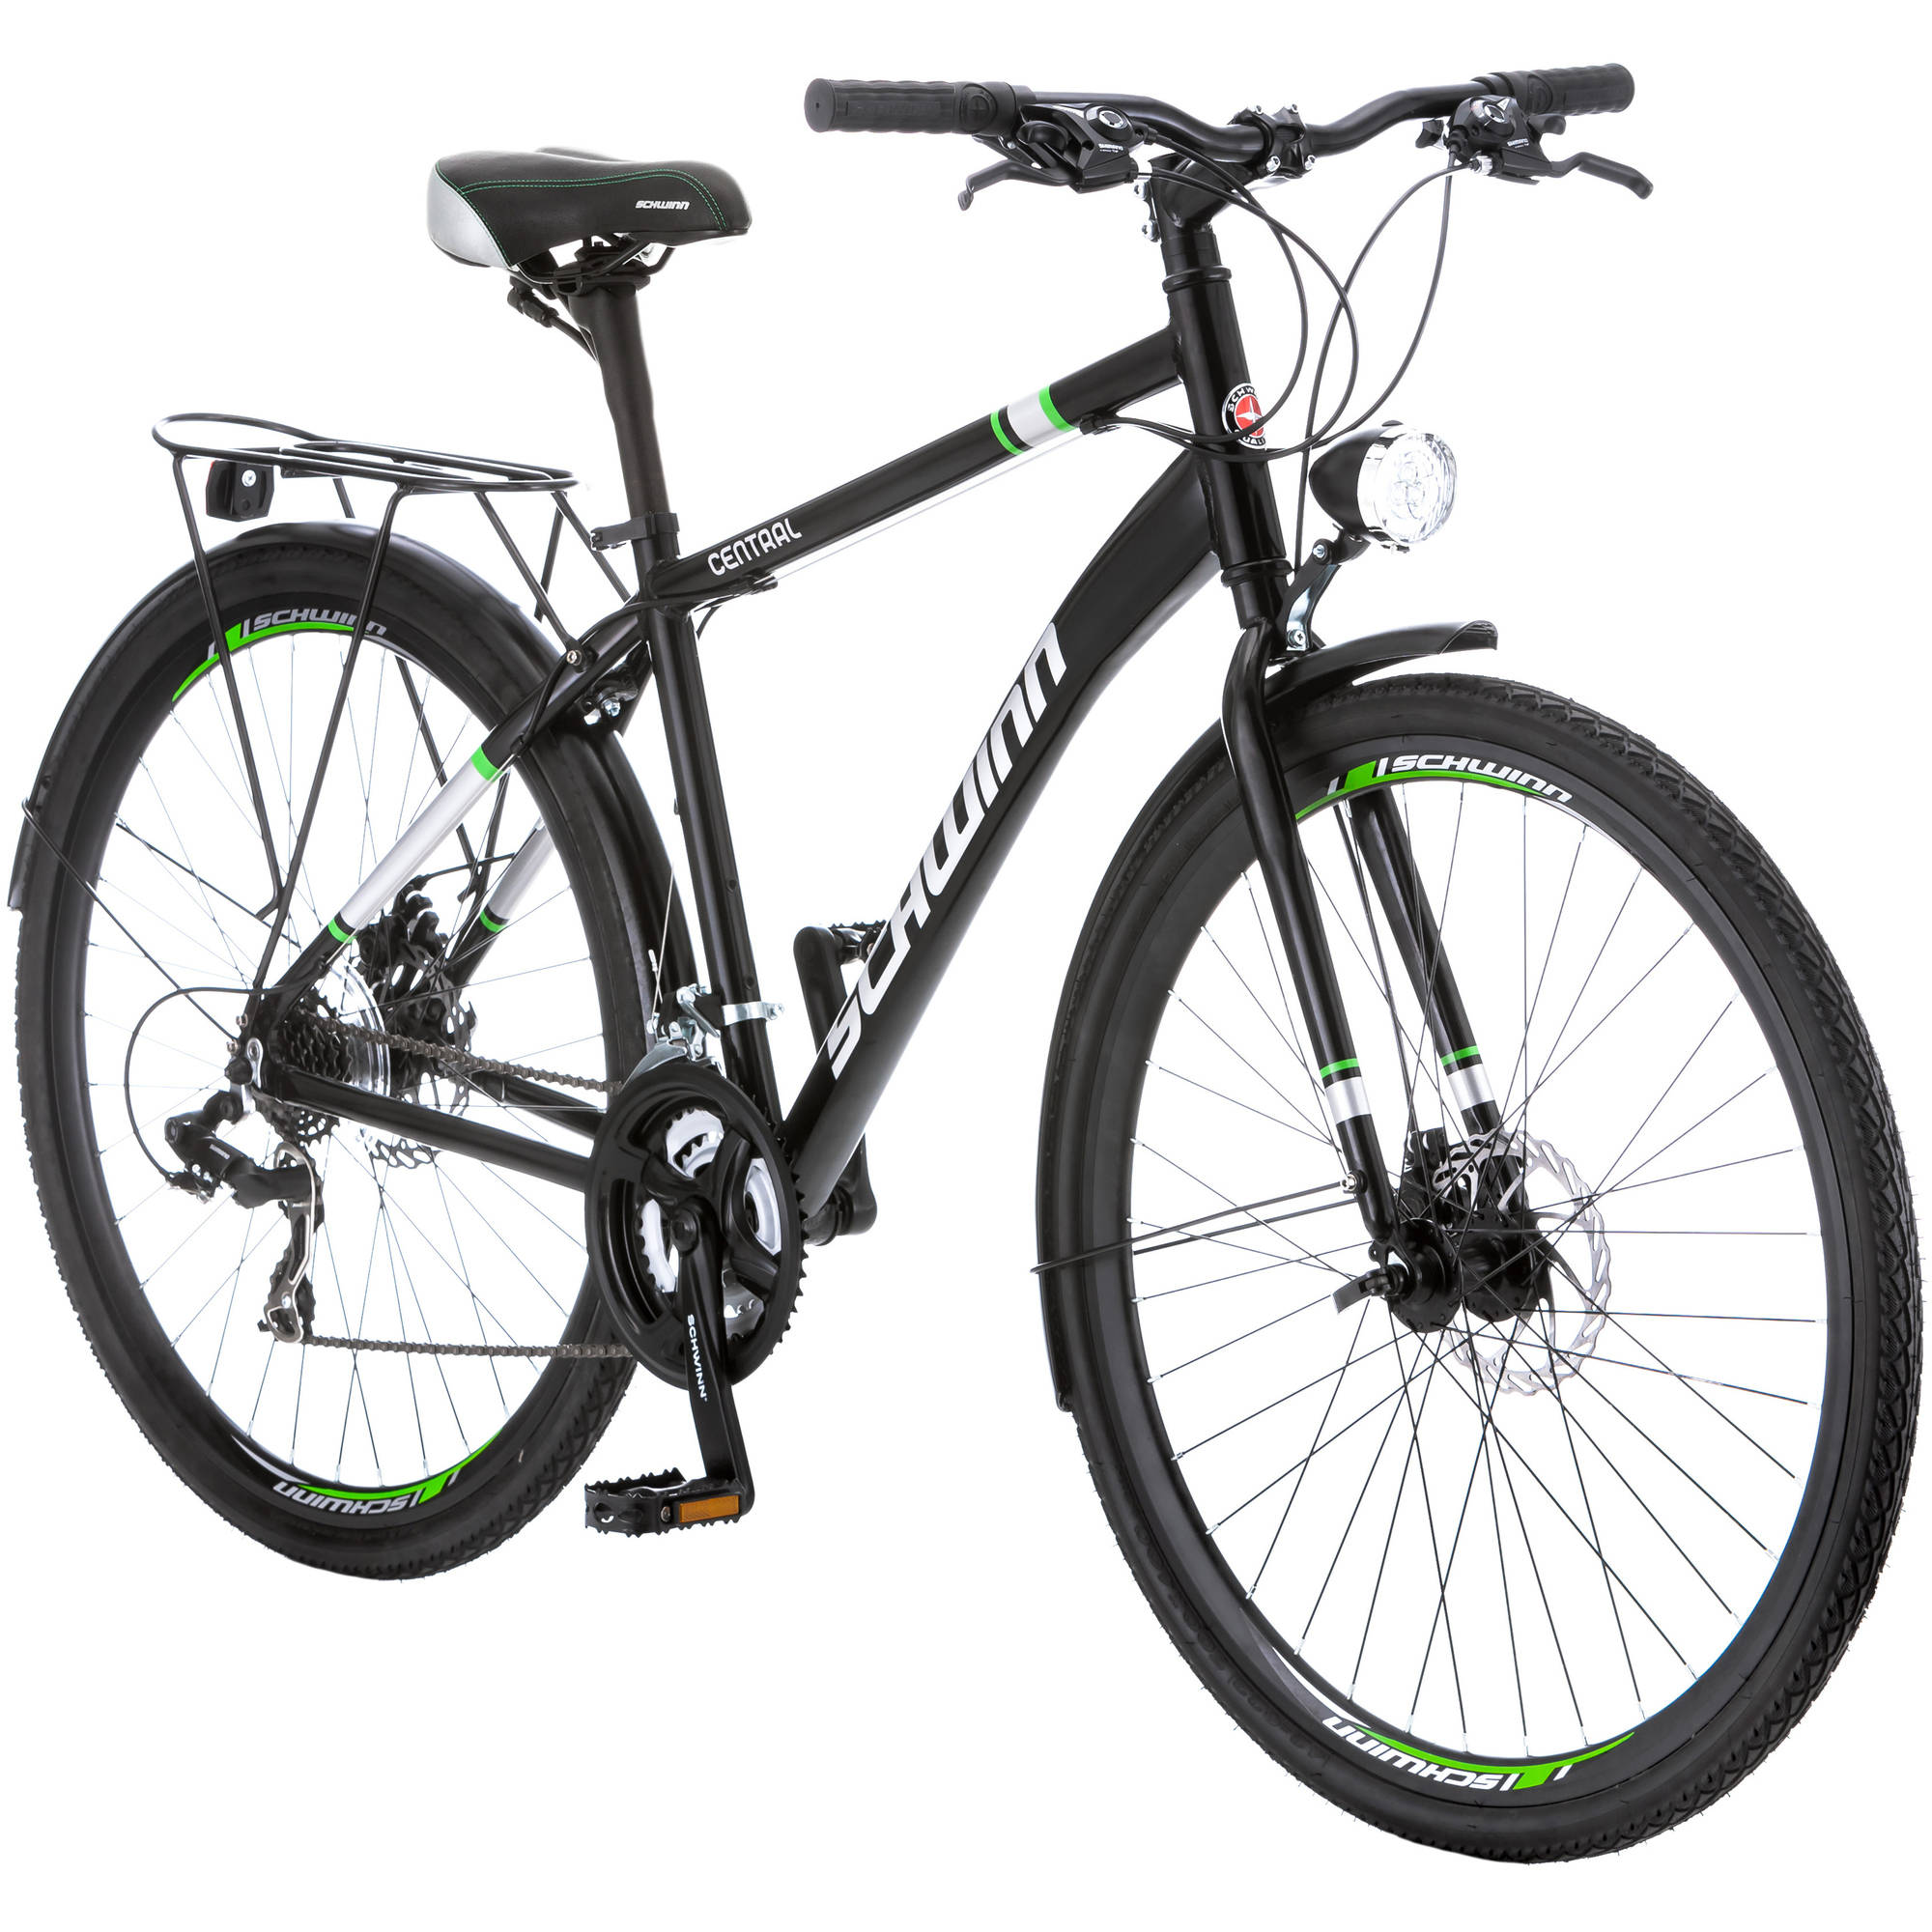 Schwinn 700c Central Commuter Bike, Black by Pacific Cycle